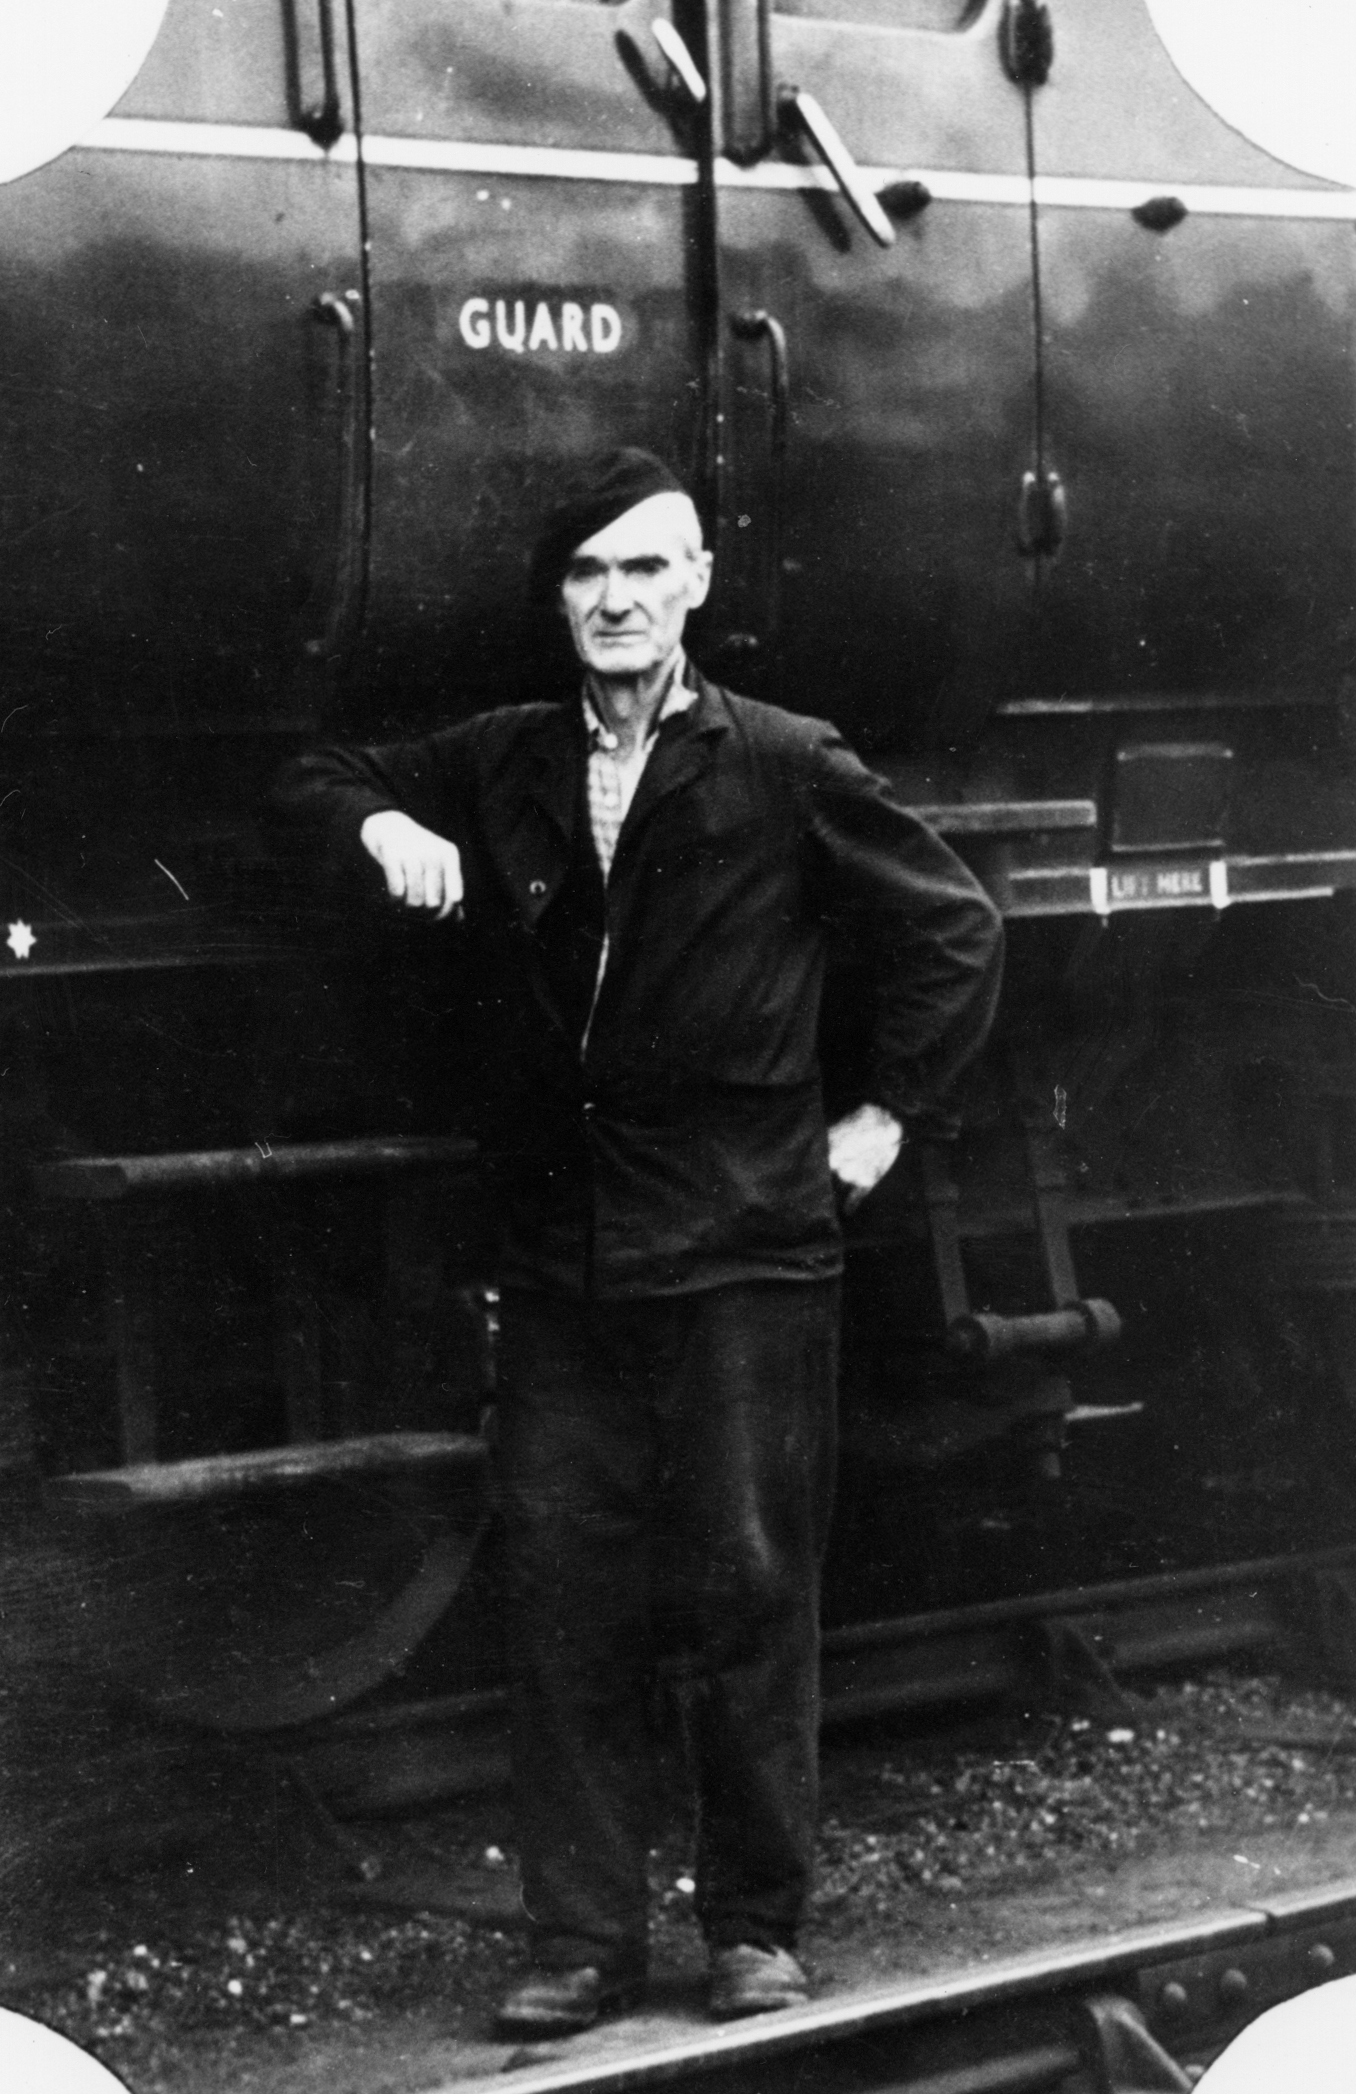 Stoker Standing By Carriage At St Margaret's Railway Works, late 1940s